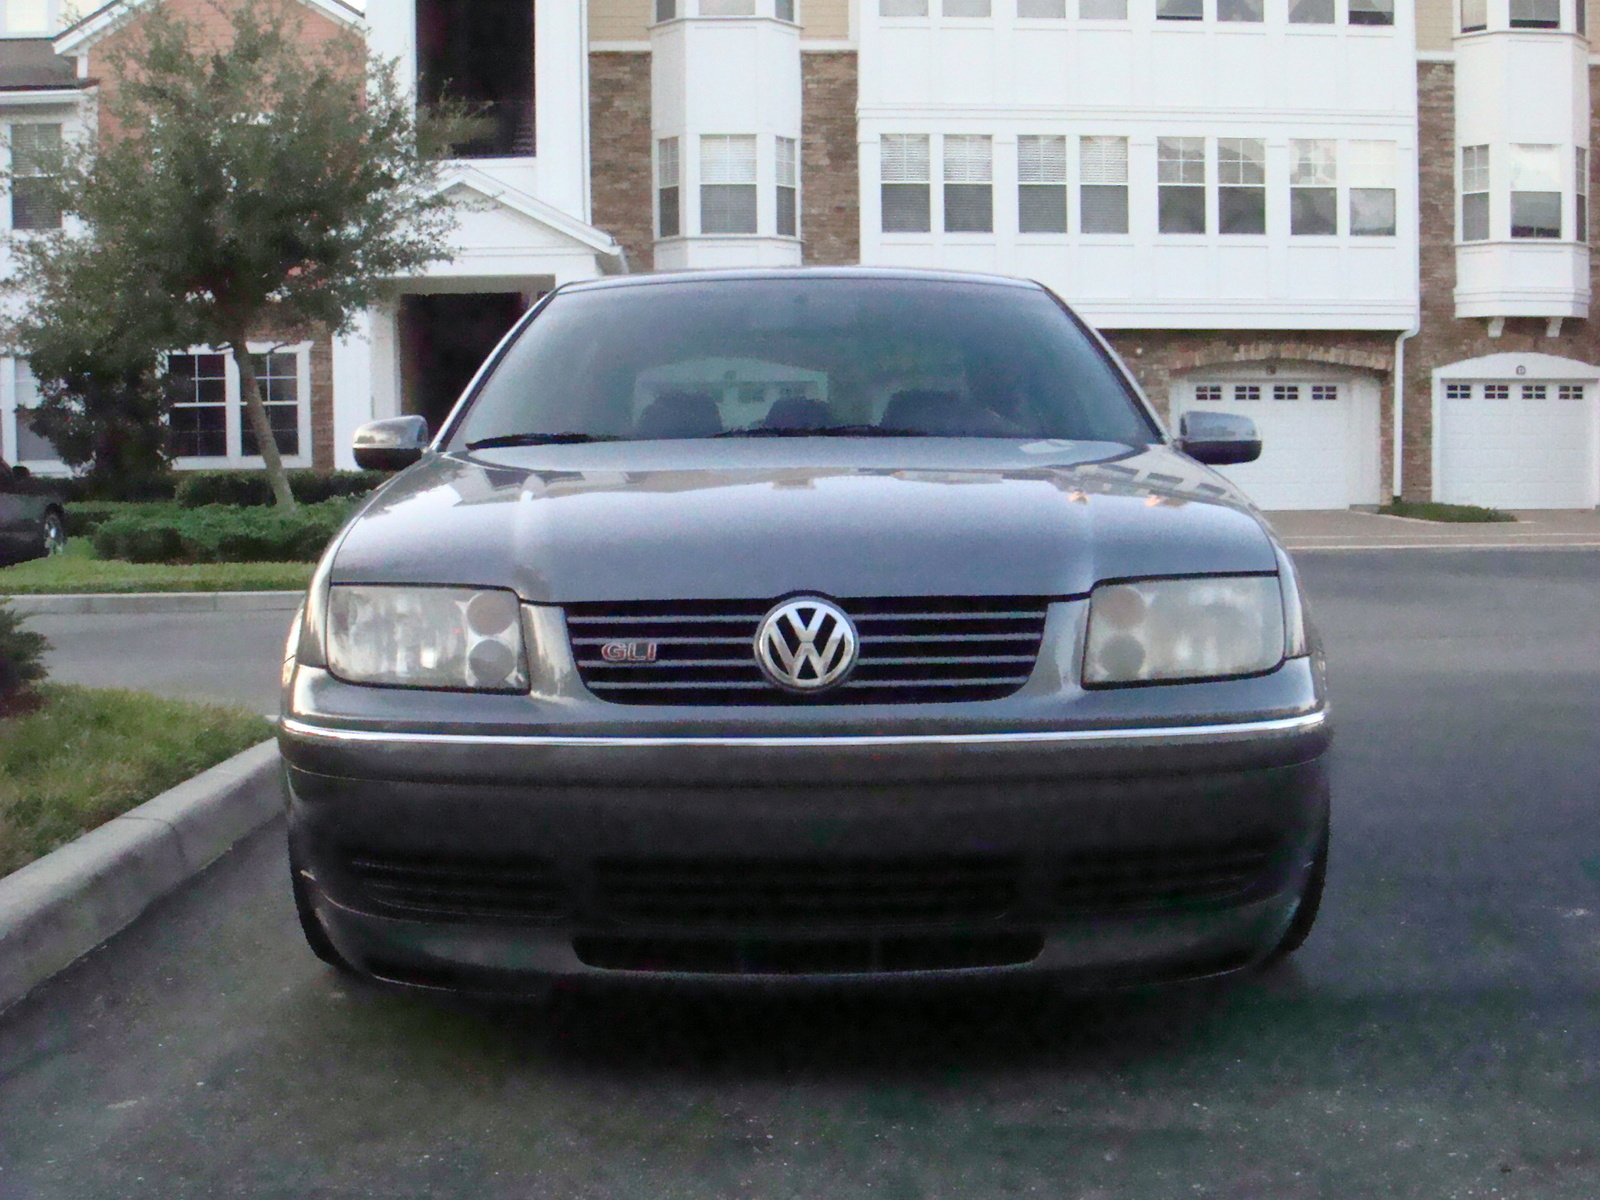 Volkswagen Jetta 1.4 2004 photo - 11